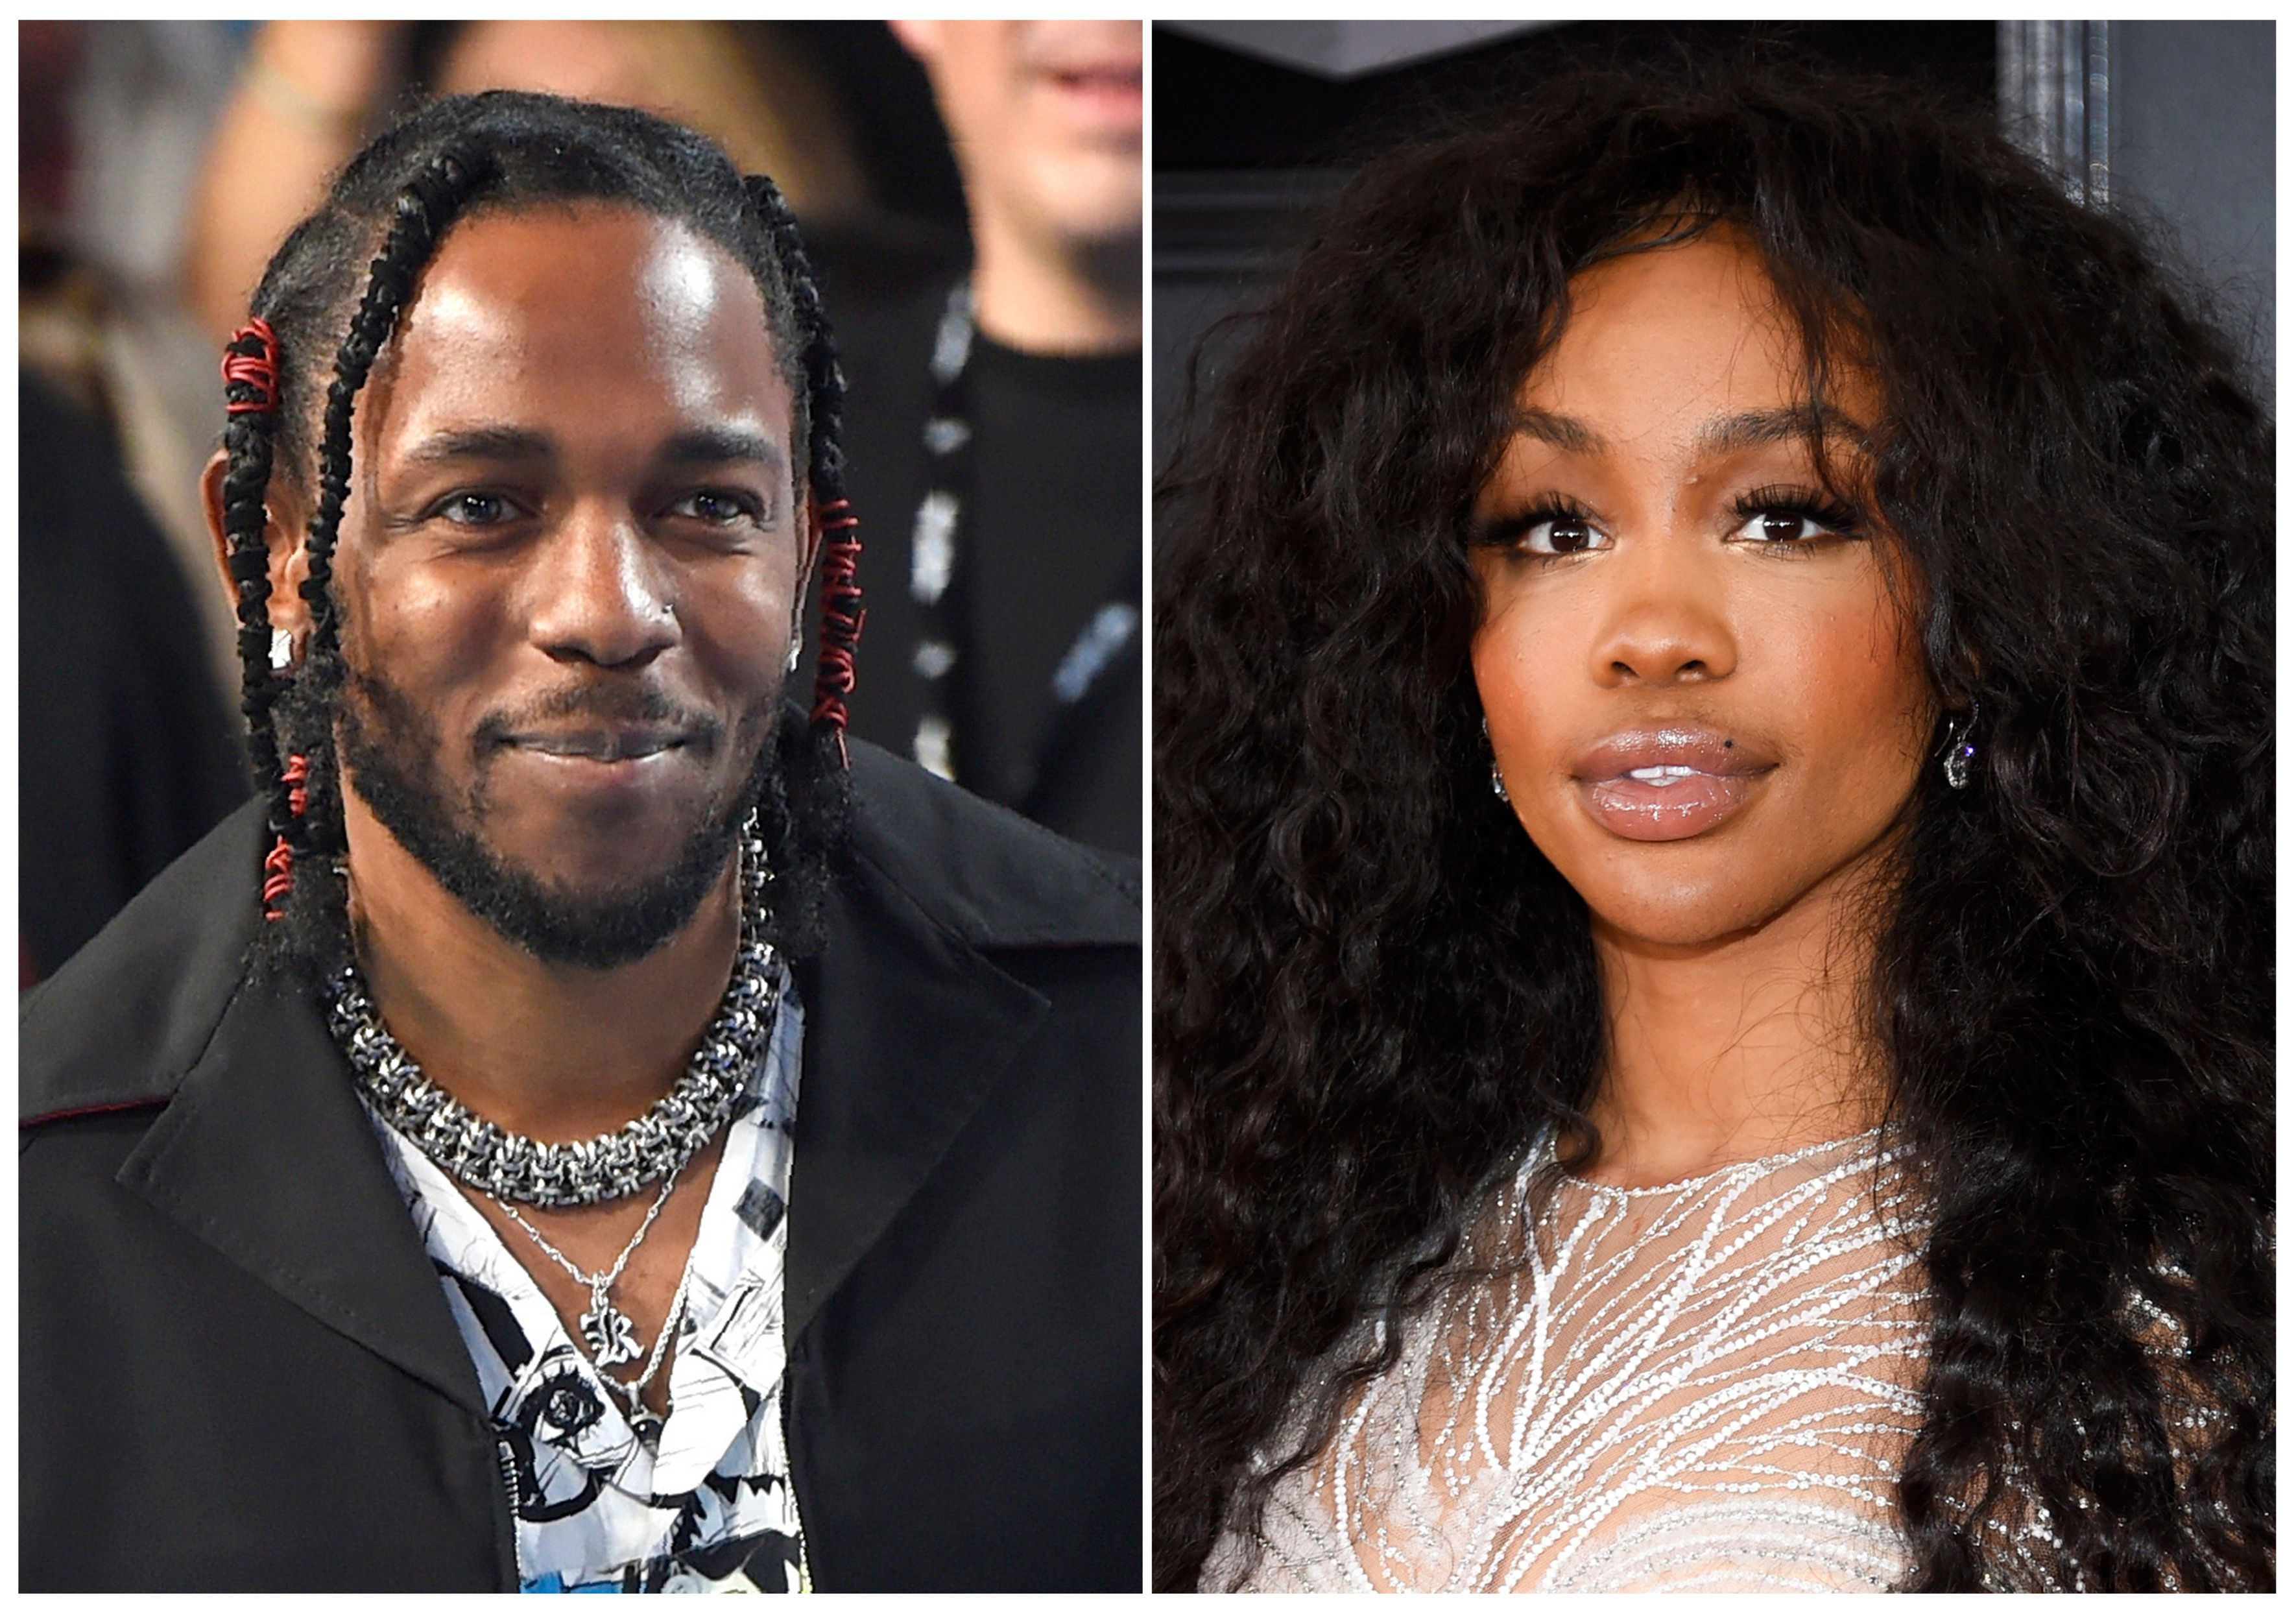 "This combination photo shows musician Kendrick Lamar, left, and Solana Rowe, better known as SZA, who, along with Mark Spears and Anthony Tiffith, were nominated for an Oscar for best original song for ""All the Stars,"" from the film ""Black Panther.""  Alexander Shuckburgh, who is also credited with writing the song, is not included in the Oscar nomination because the Academy of Motion Picture Arts and Sciences limits the number of nominees in the best original song category to four names. (AP Photo)"